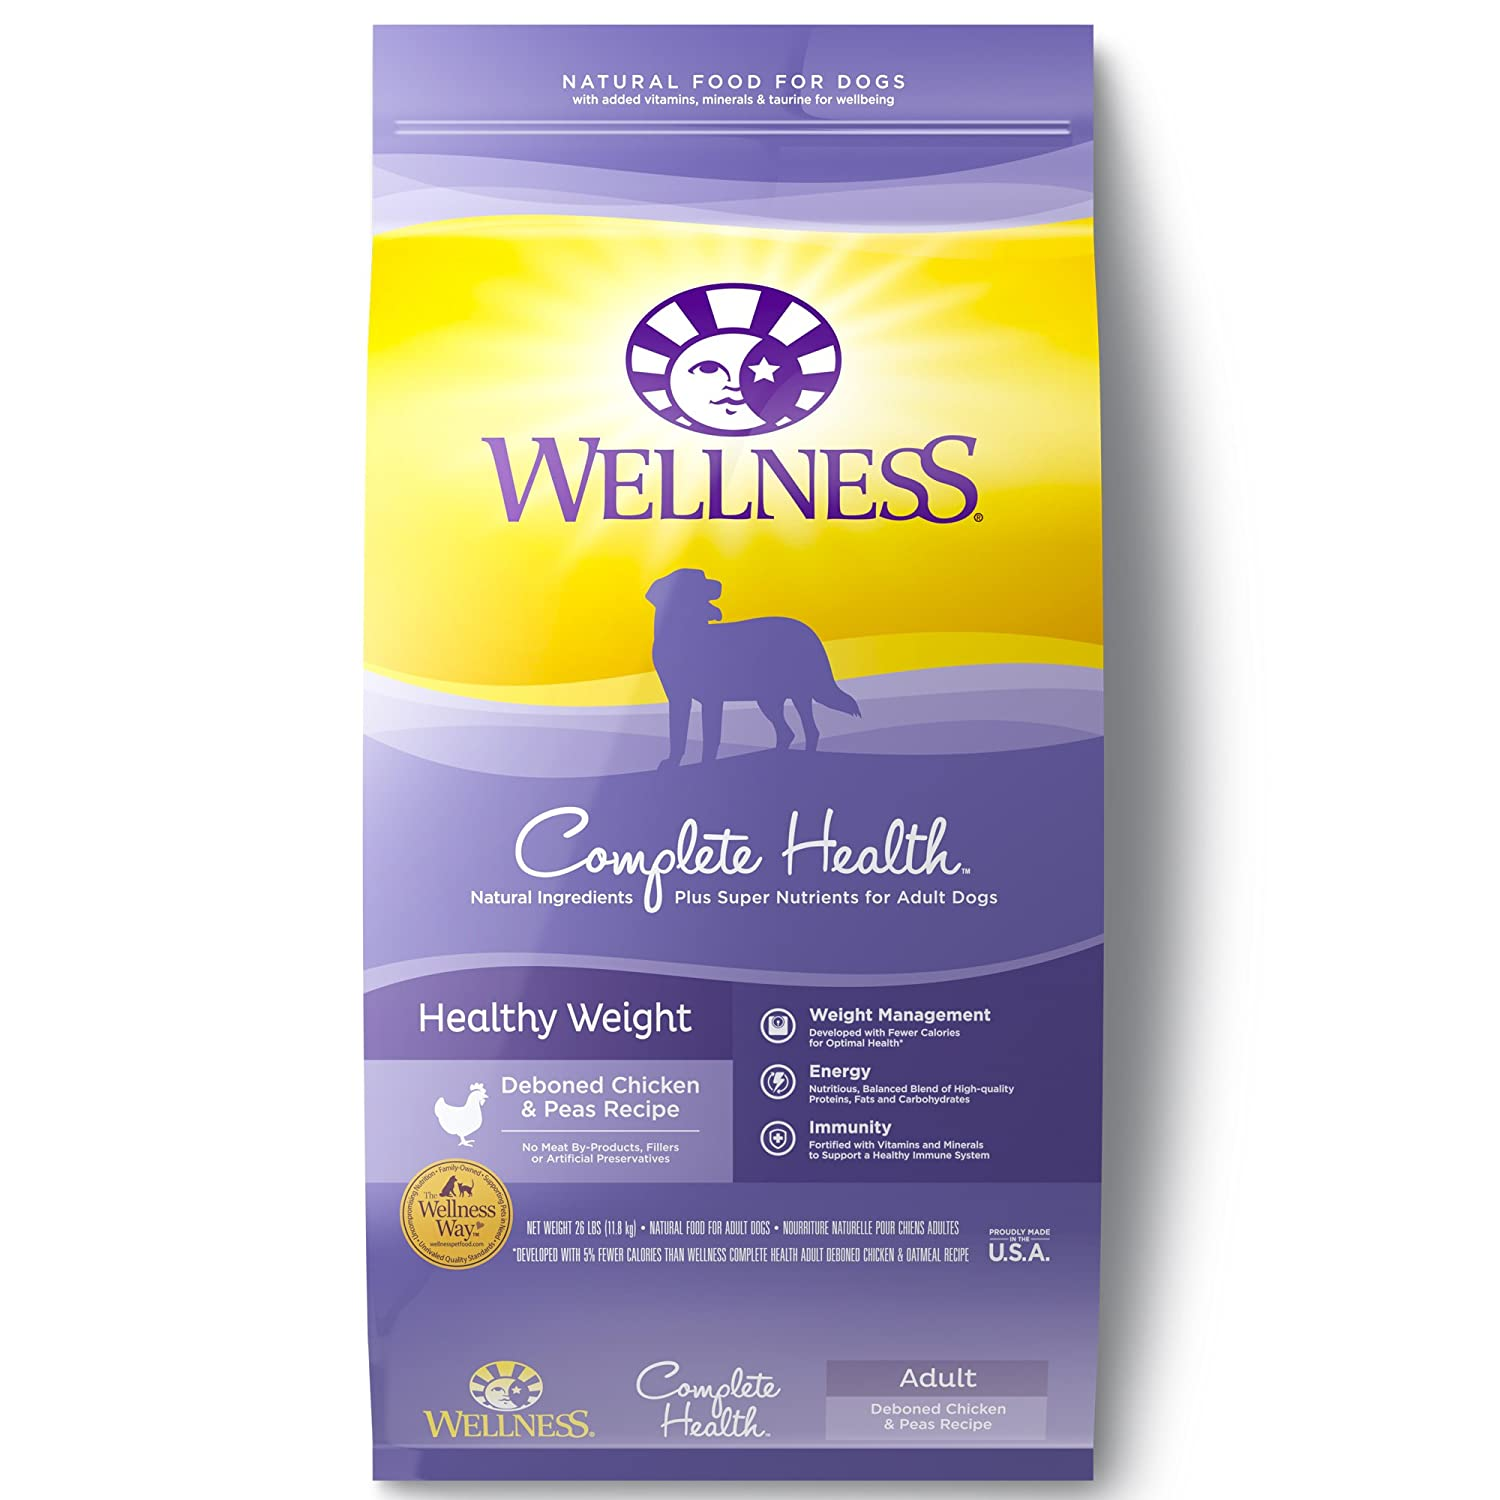 Wellness Complete Health Dry Dog Food